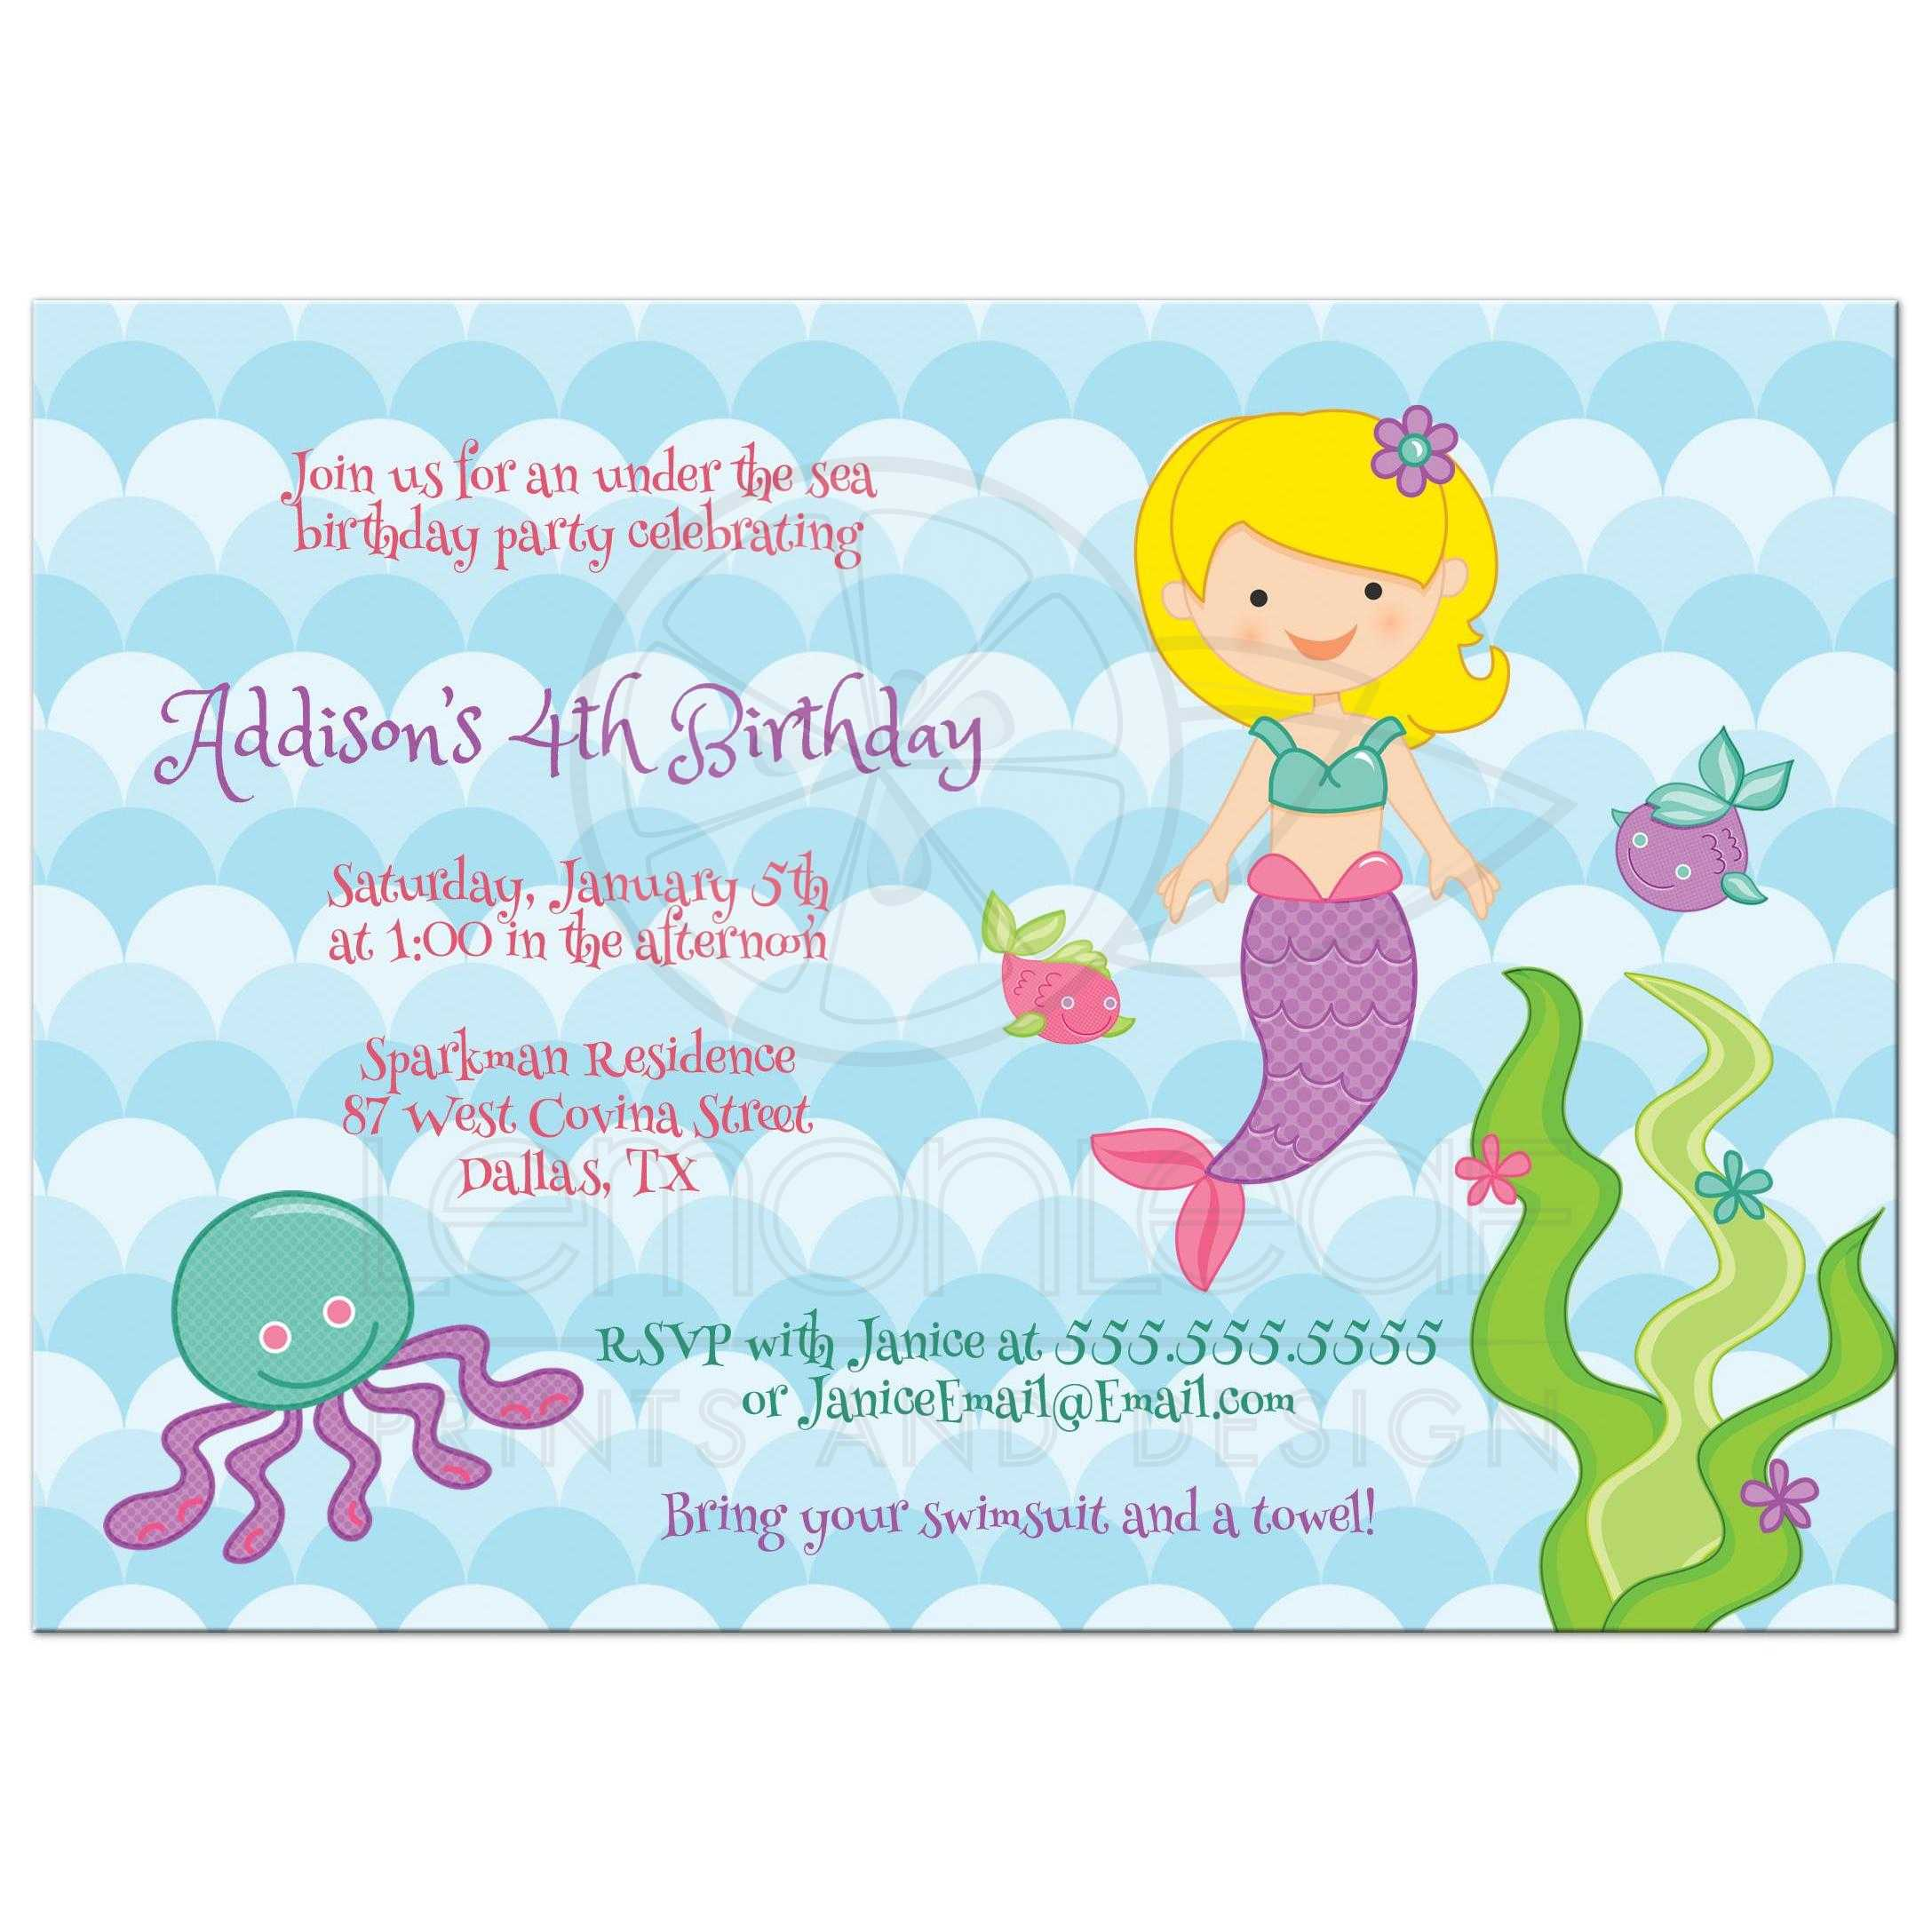 birthday party invitation under the sea mermaid with blonde hair